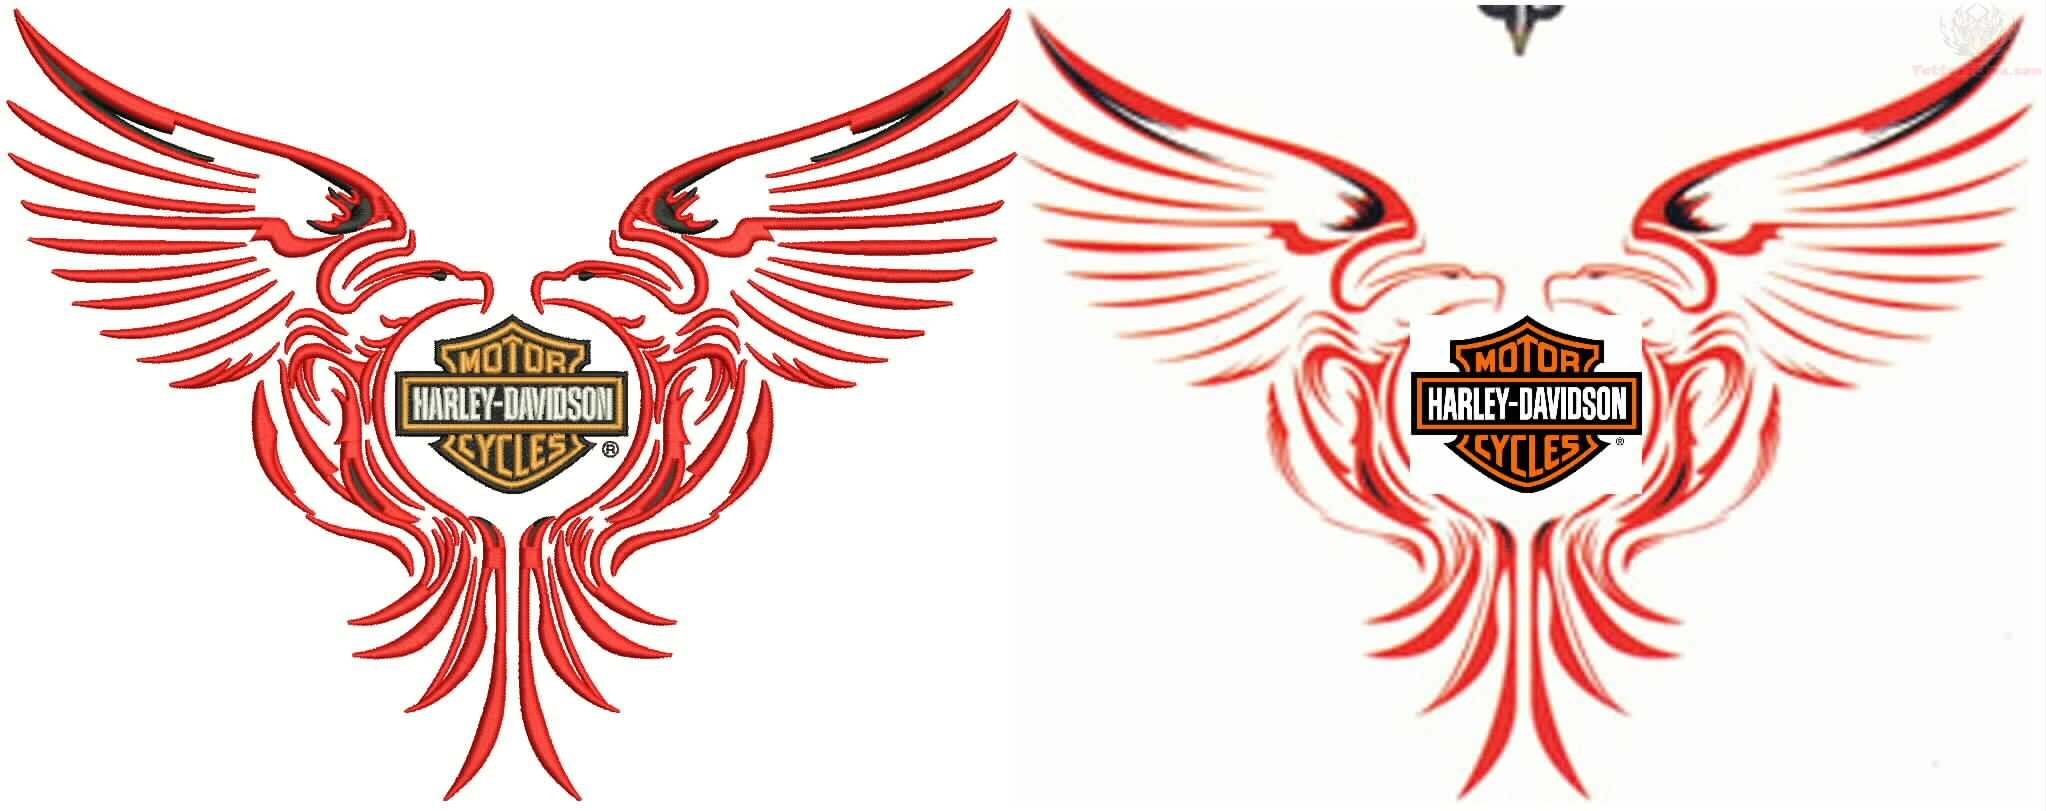 Harley Davidson Logo With Angel Wings